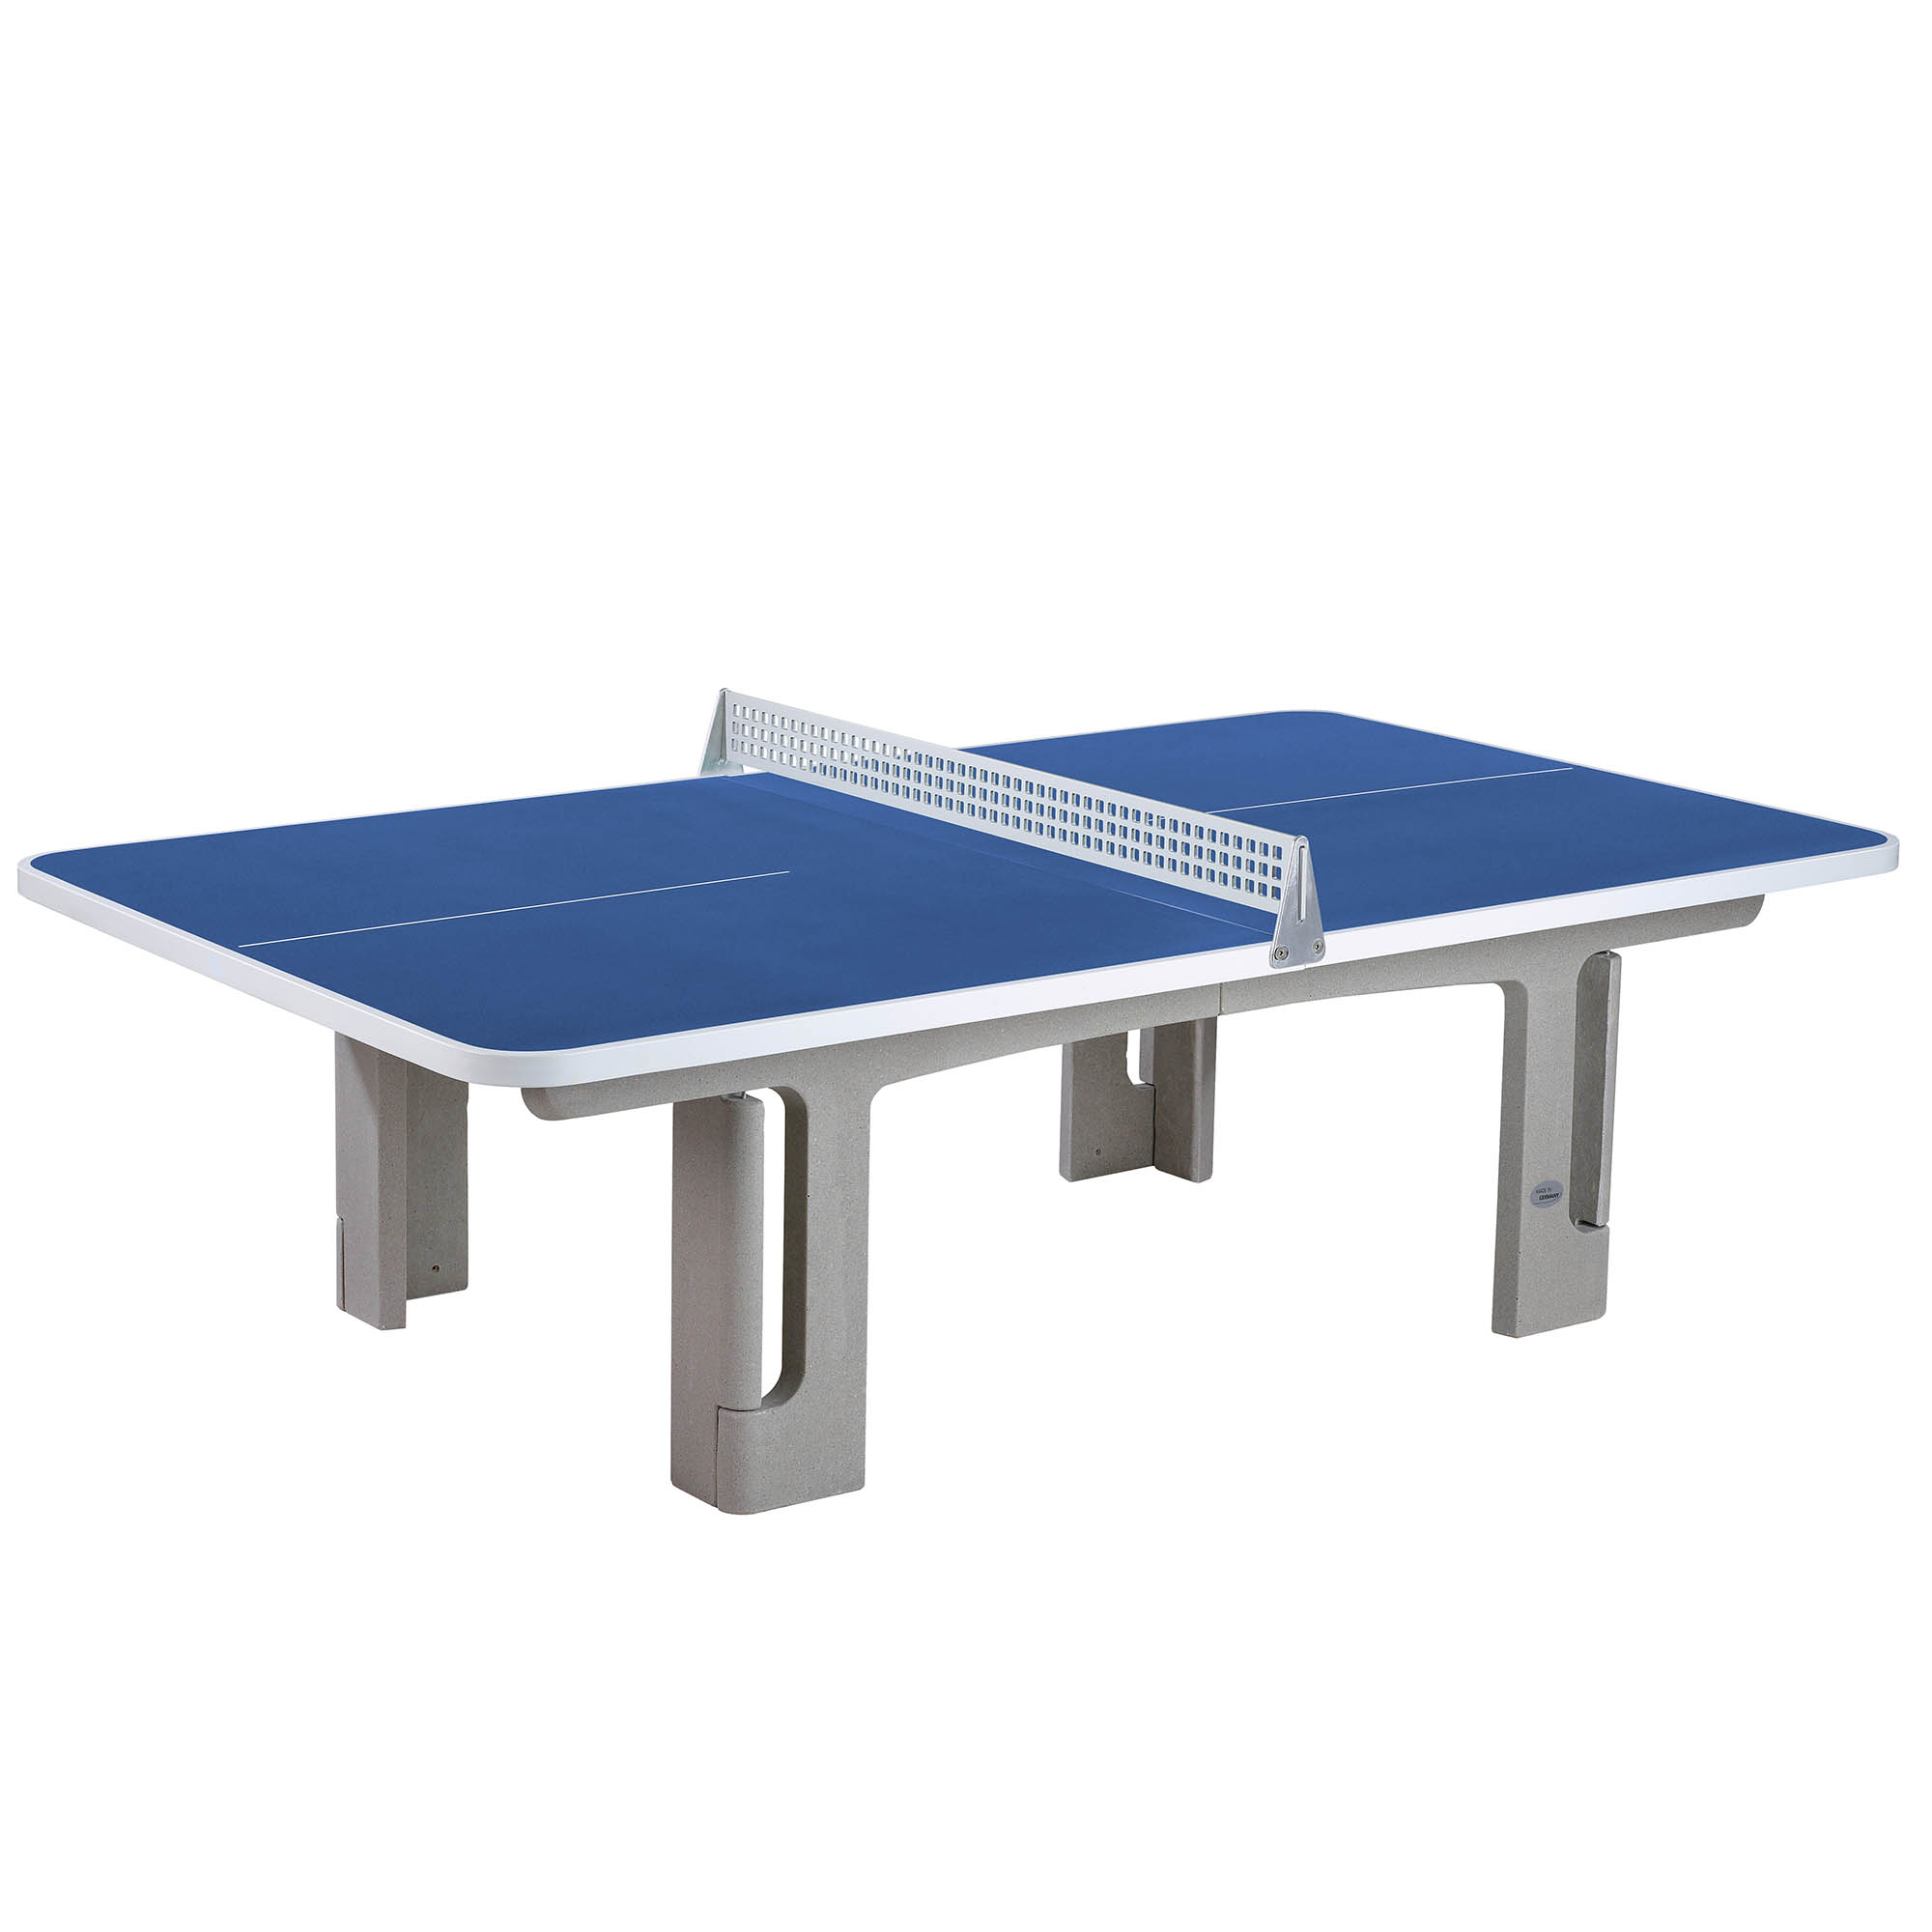 Image of Butterfly B2000 Standard Concrete Table 30SQ Table Tennis Table - Blue